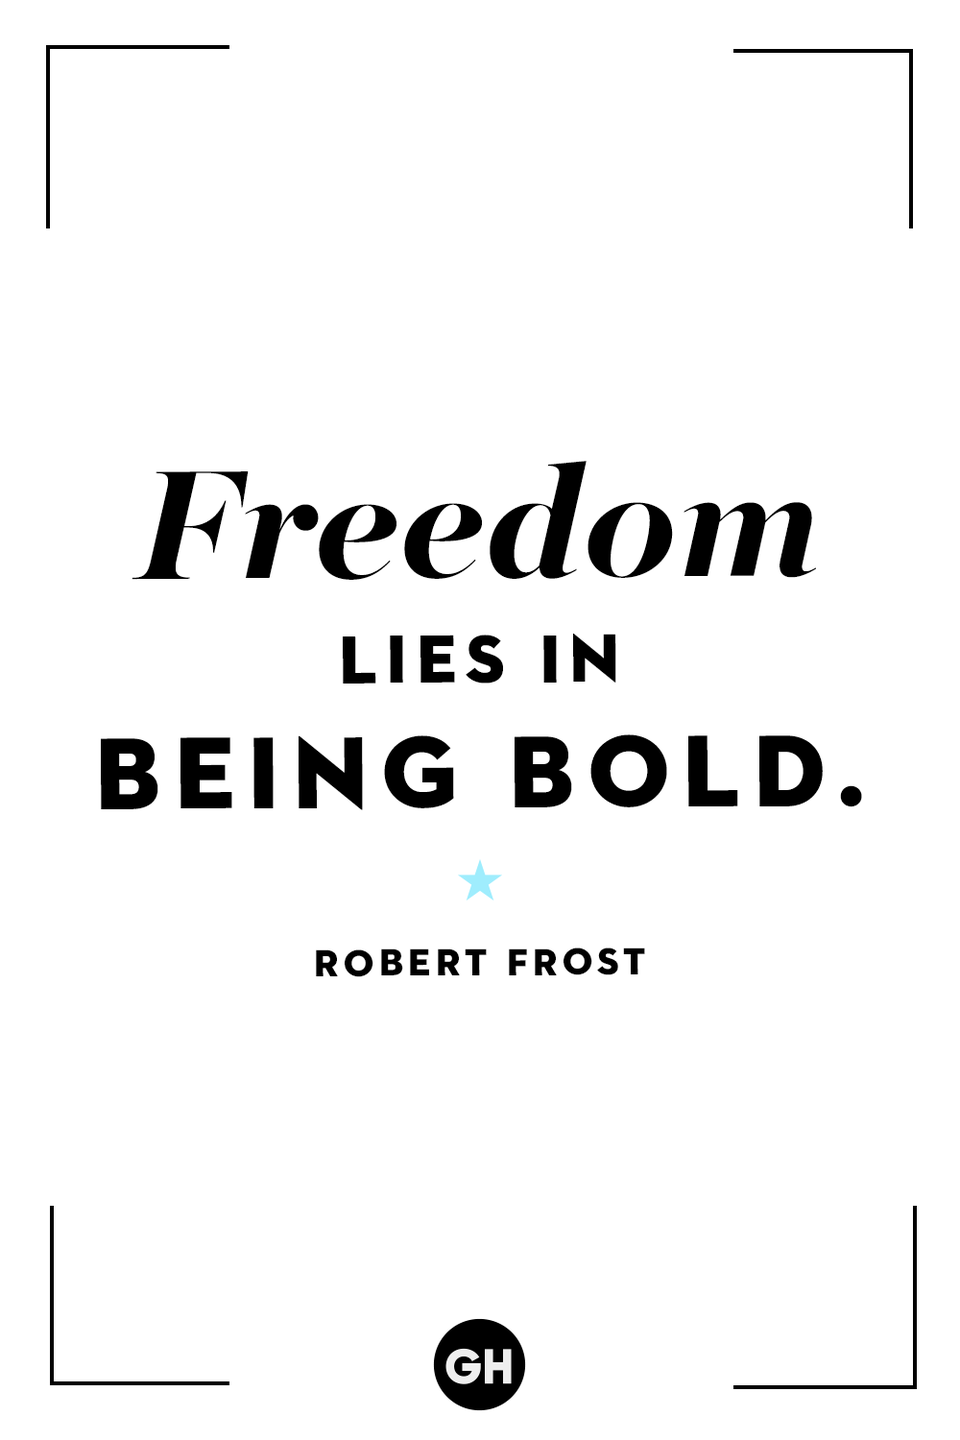 <p>Freedom lies in being bold.</p>